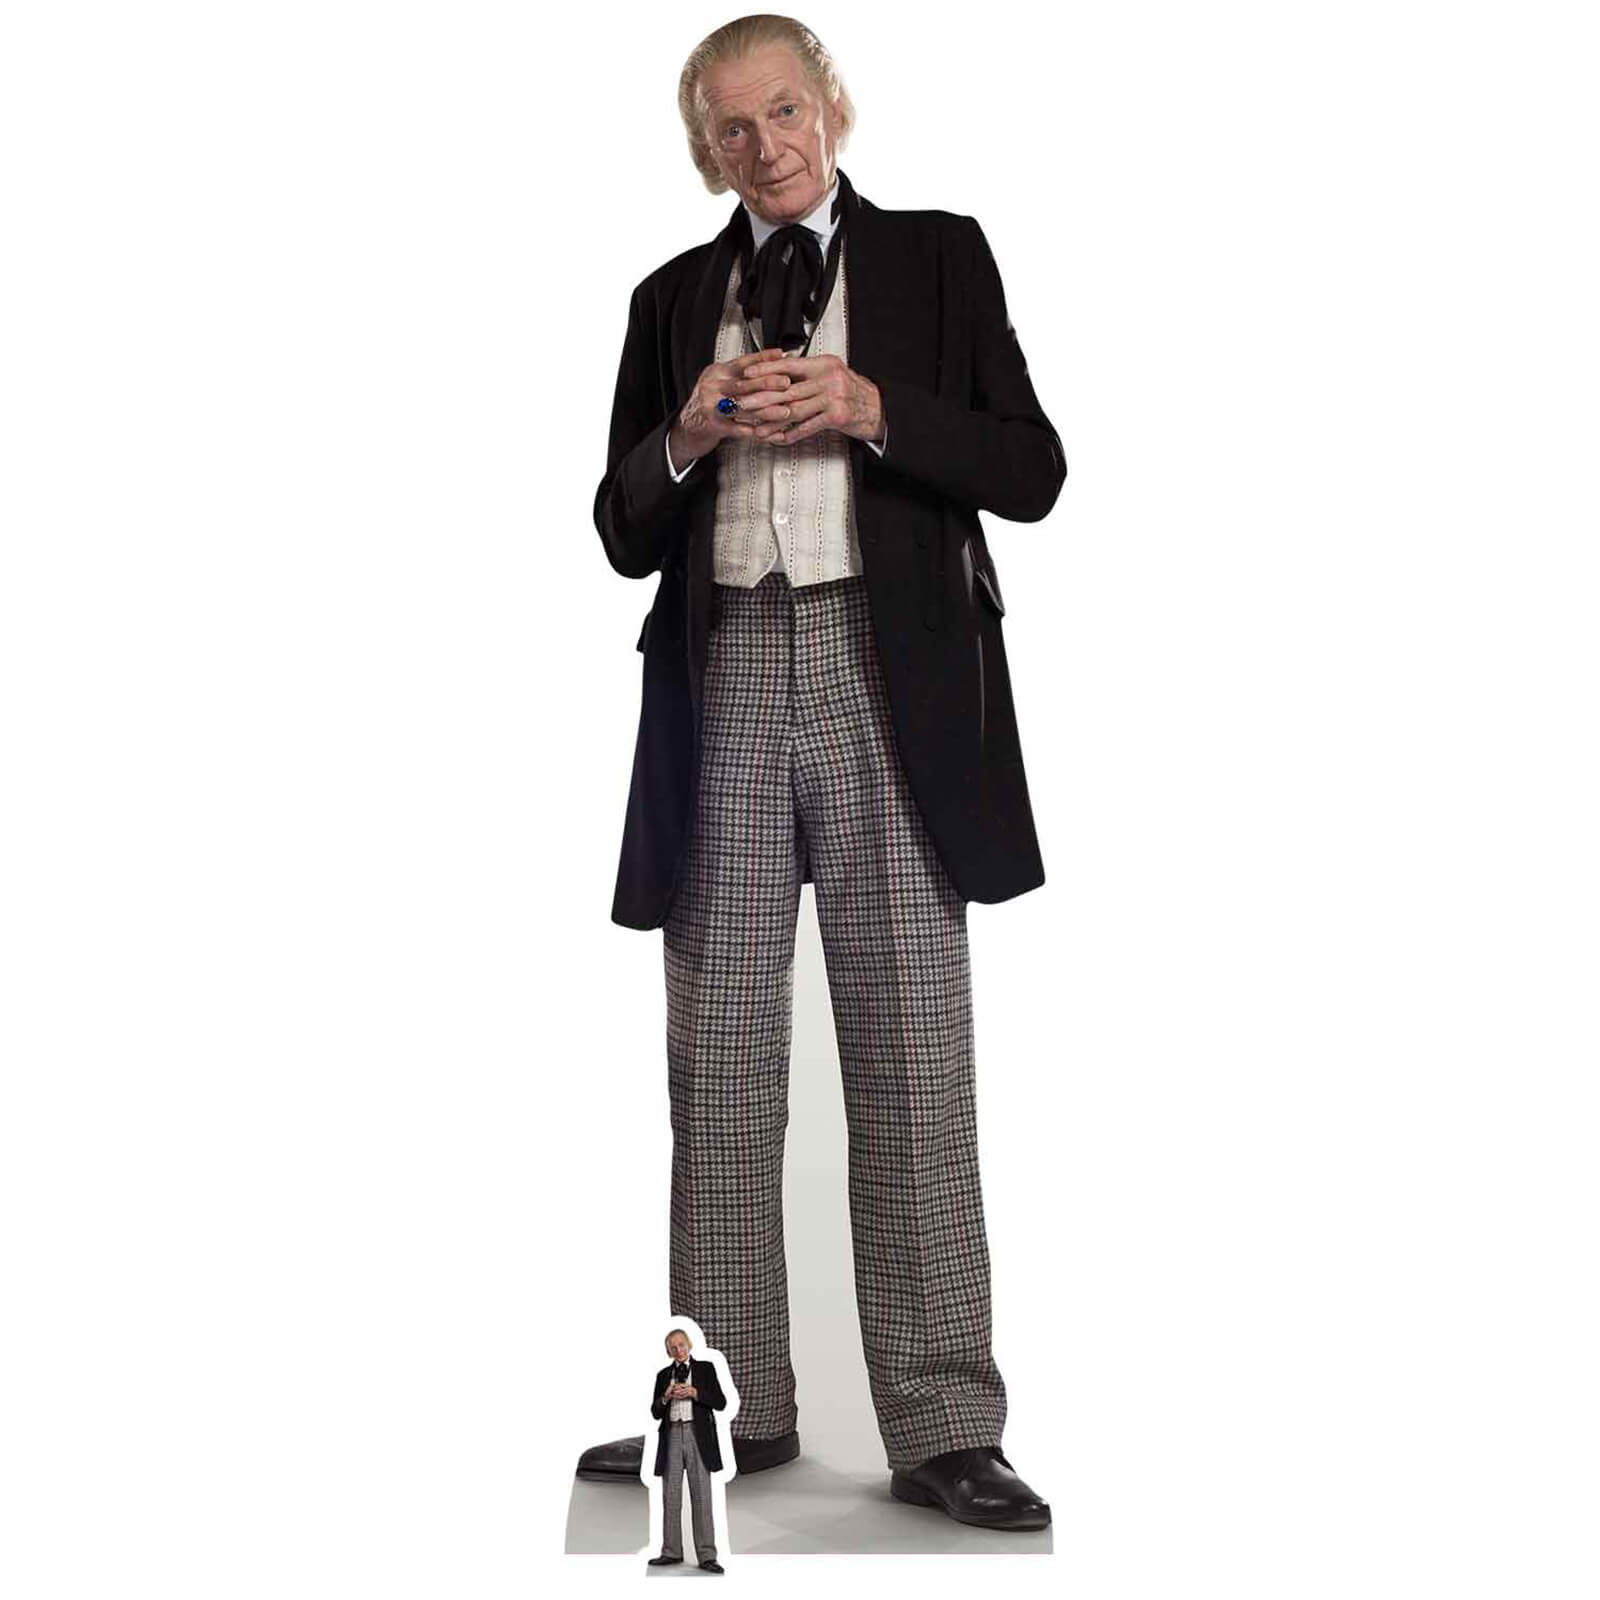 The First Doctor David Bradley (Christmas Special) Life Size Cut Out